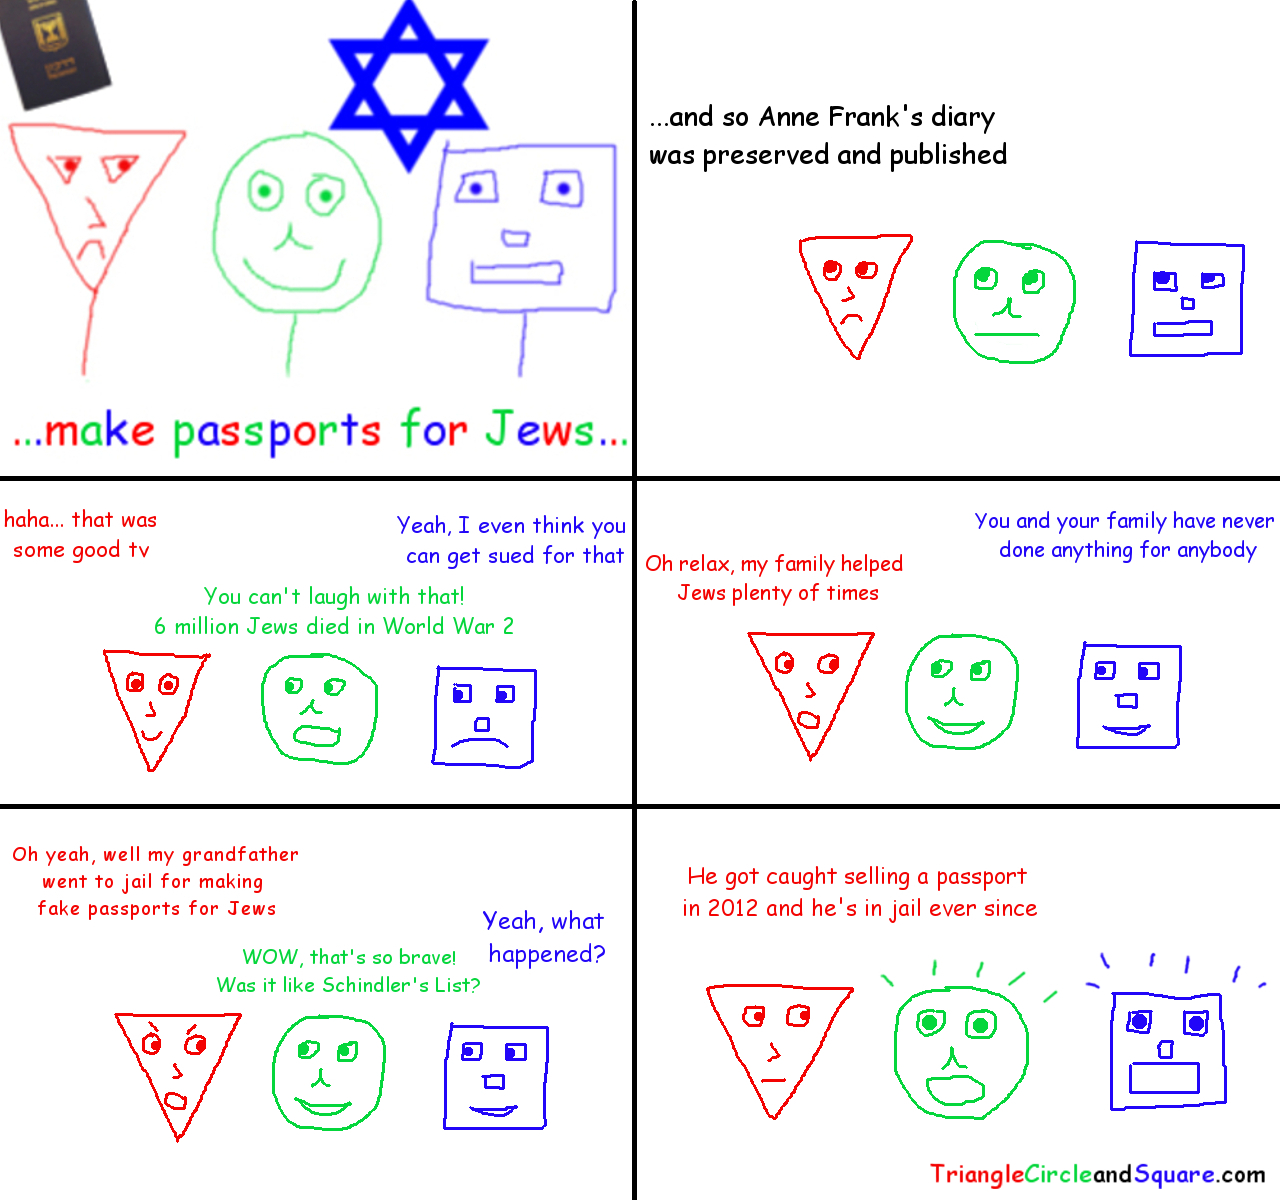 make passports for Jews